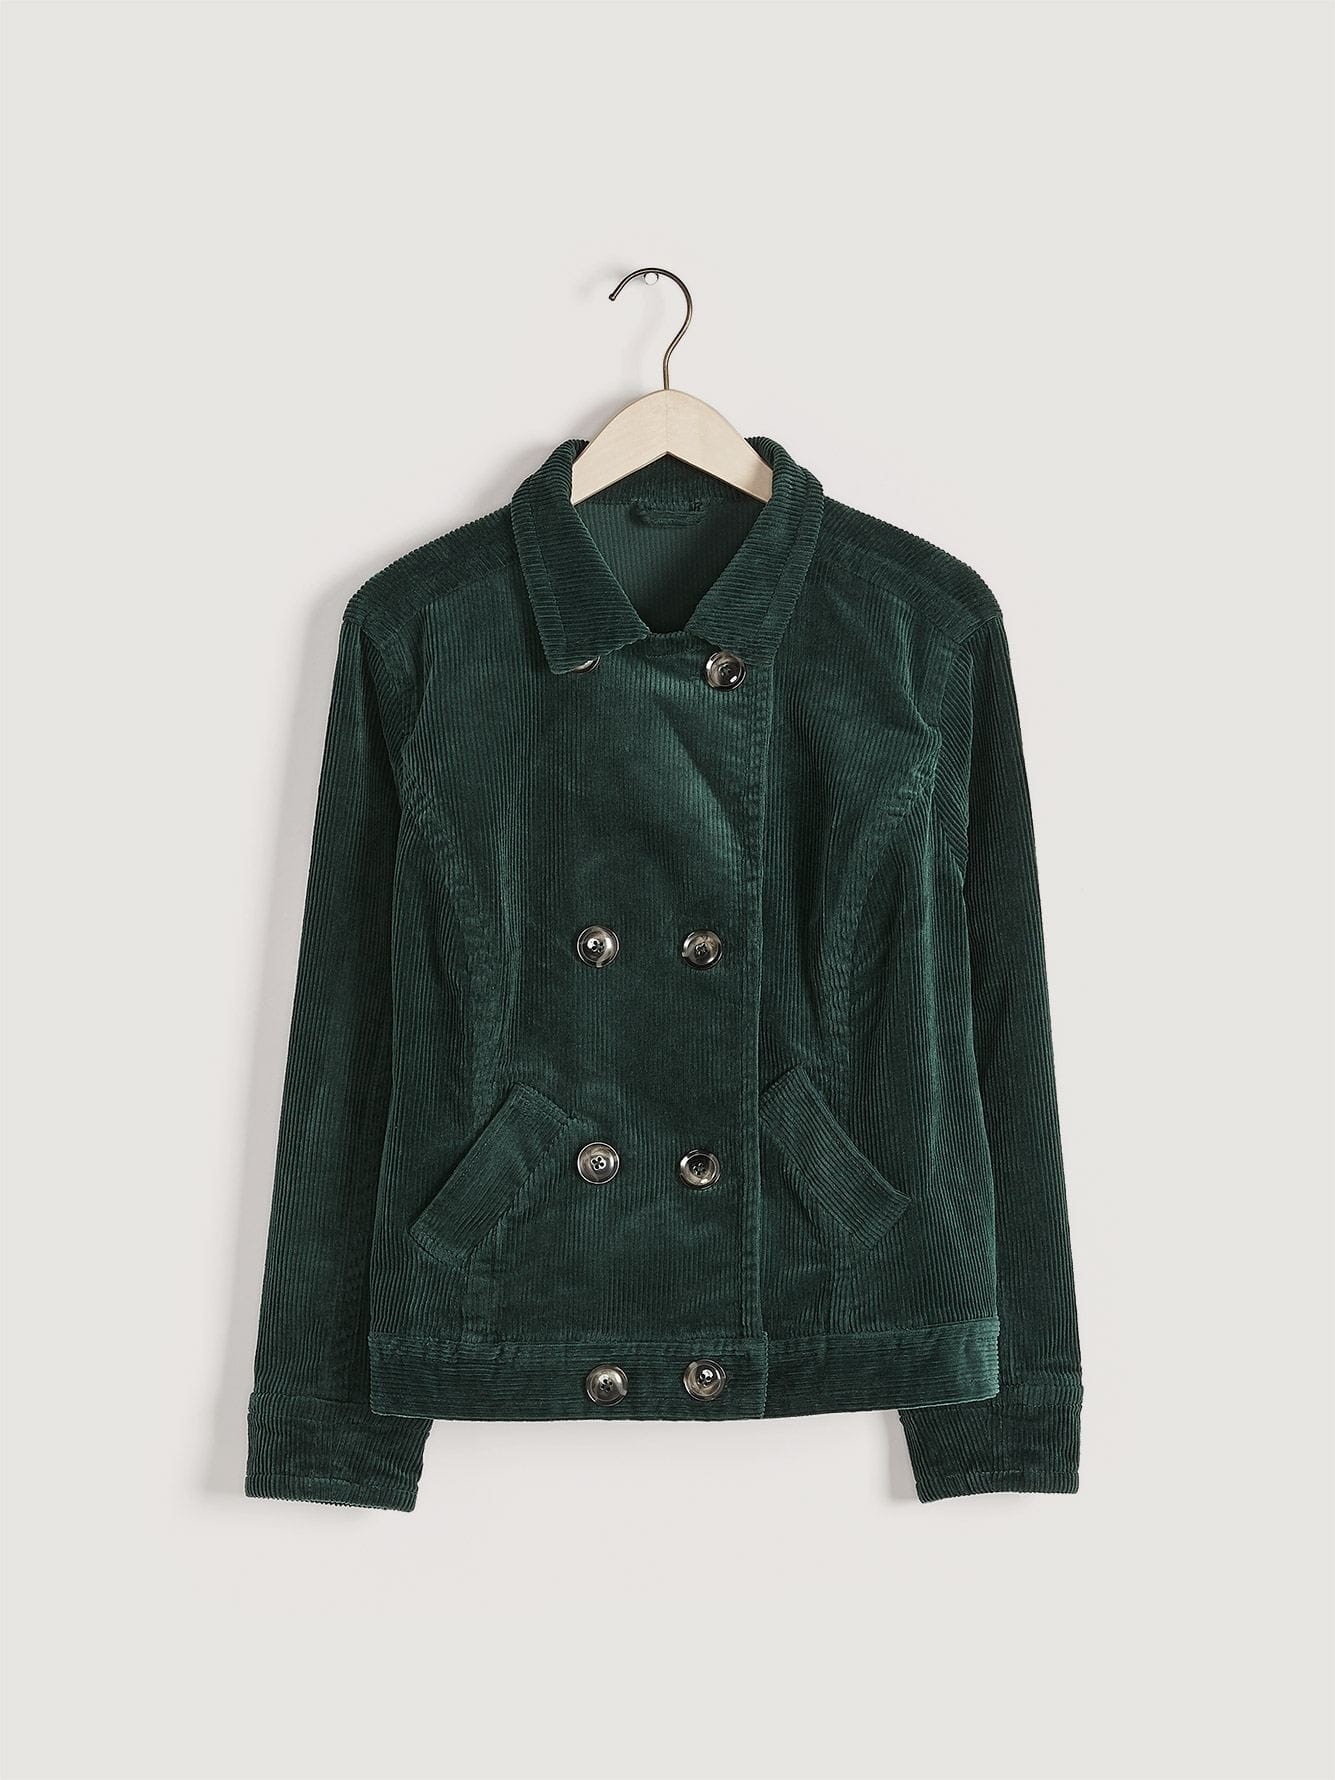 Green Corduroy Jacket - Addition Elle